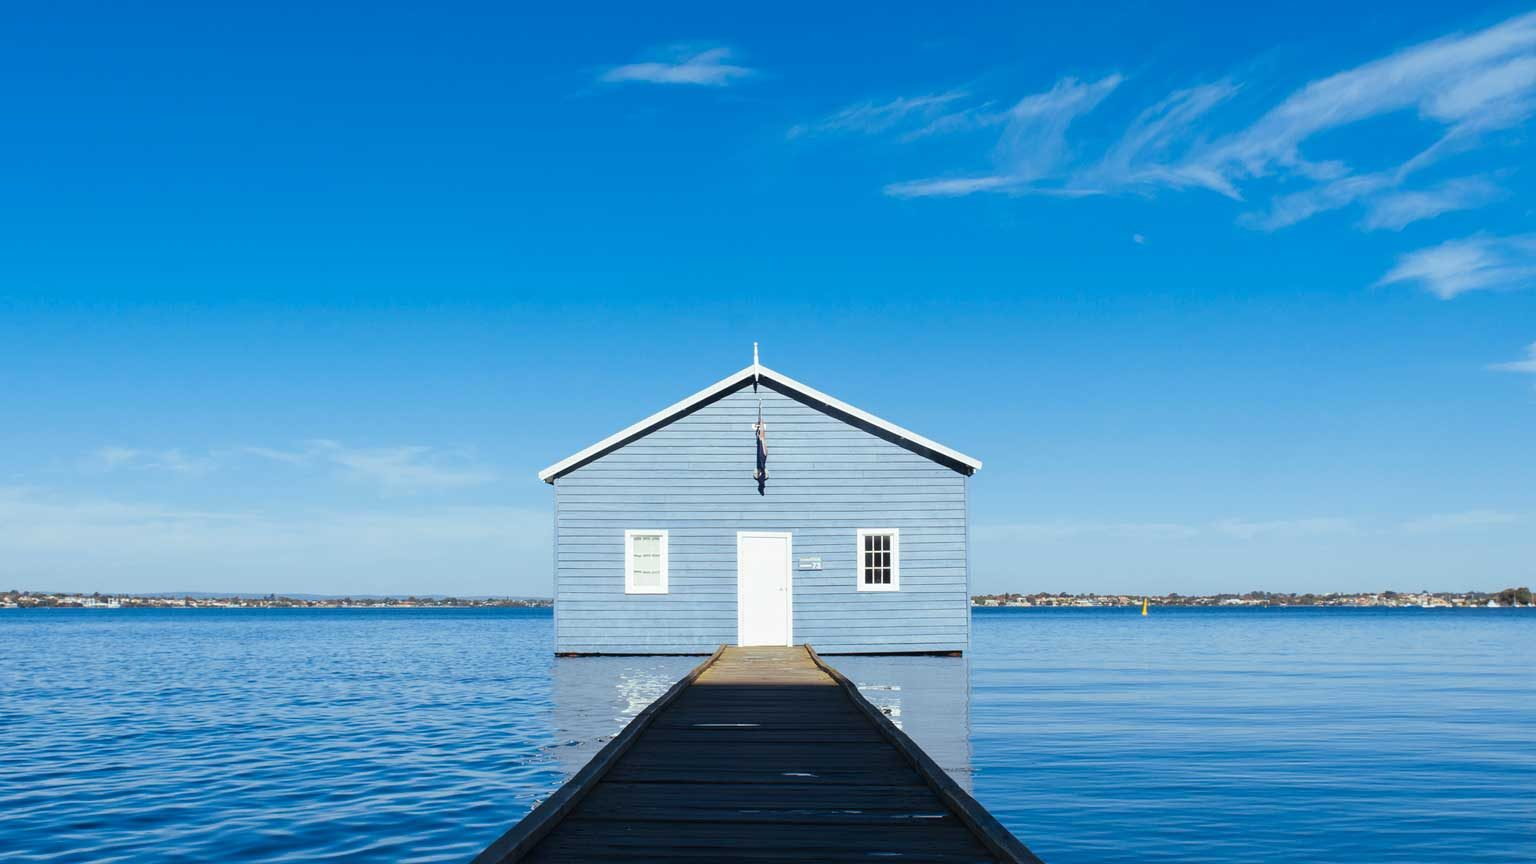 Iconic Crawley Edge Blue Boat Shed on Swan River in Perth, Australia